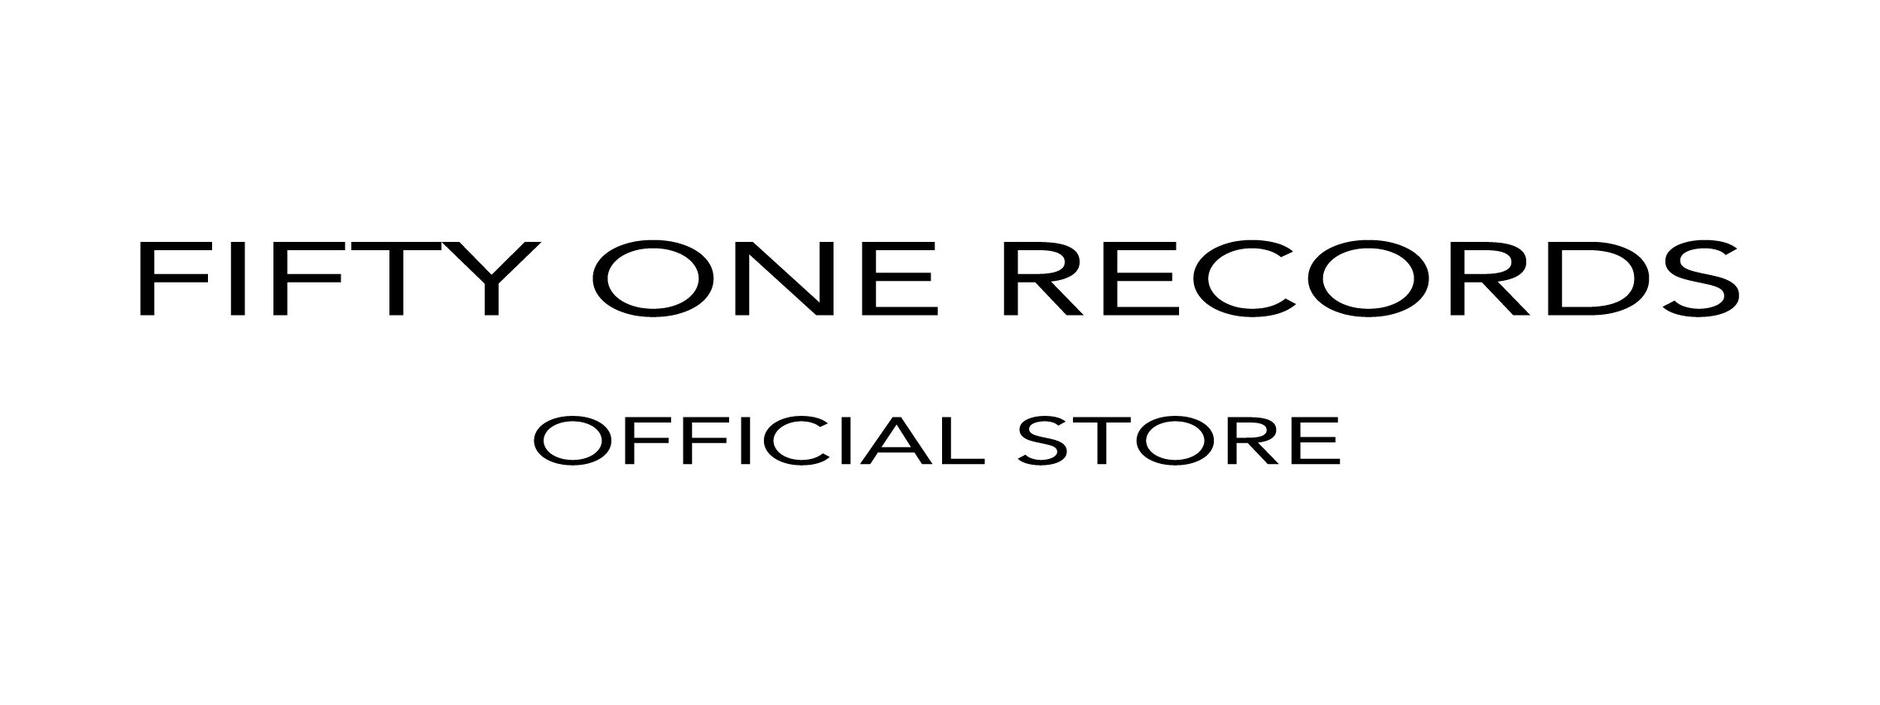 FIFTY ONE RECORDS OFFICIAL STORE